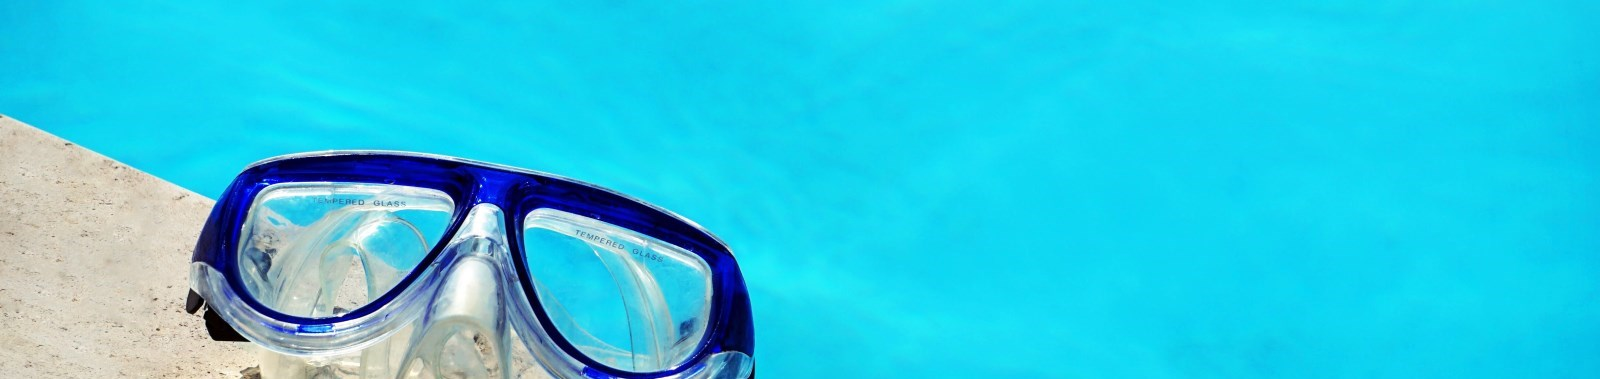 Swim googles next to pool